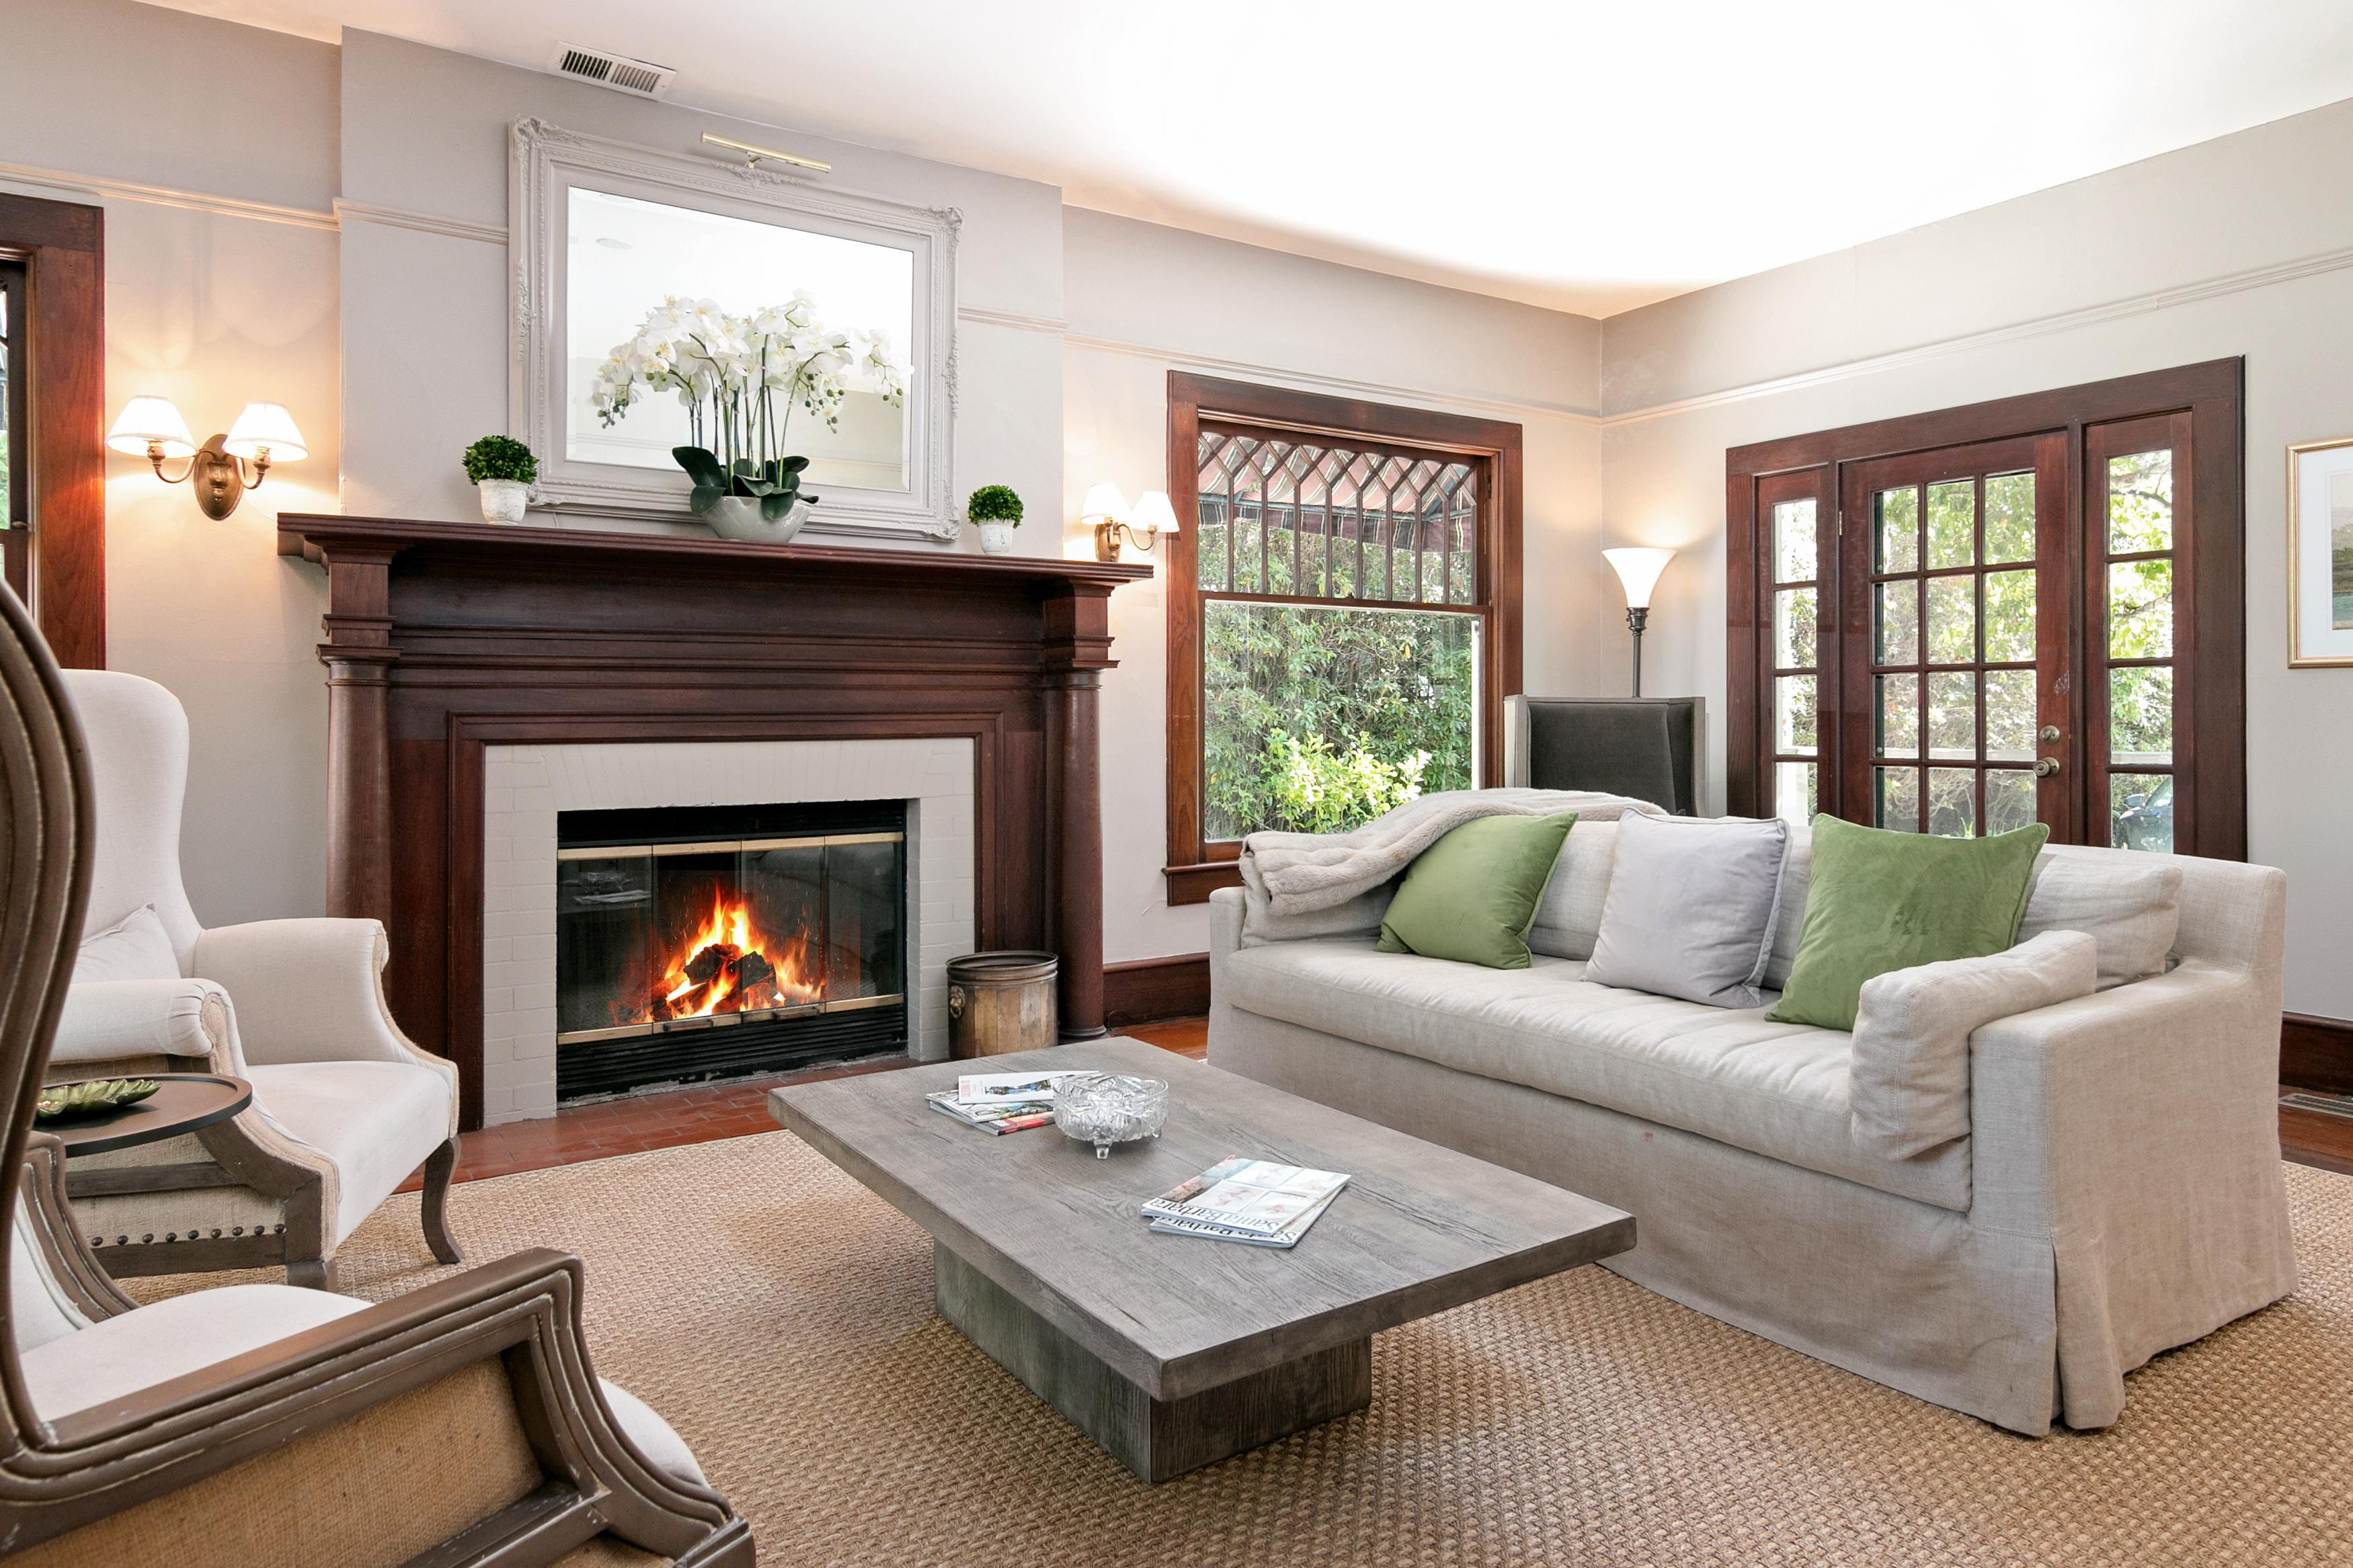 A wood-burning fireplace adds ambience to the living room.